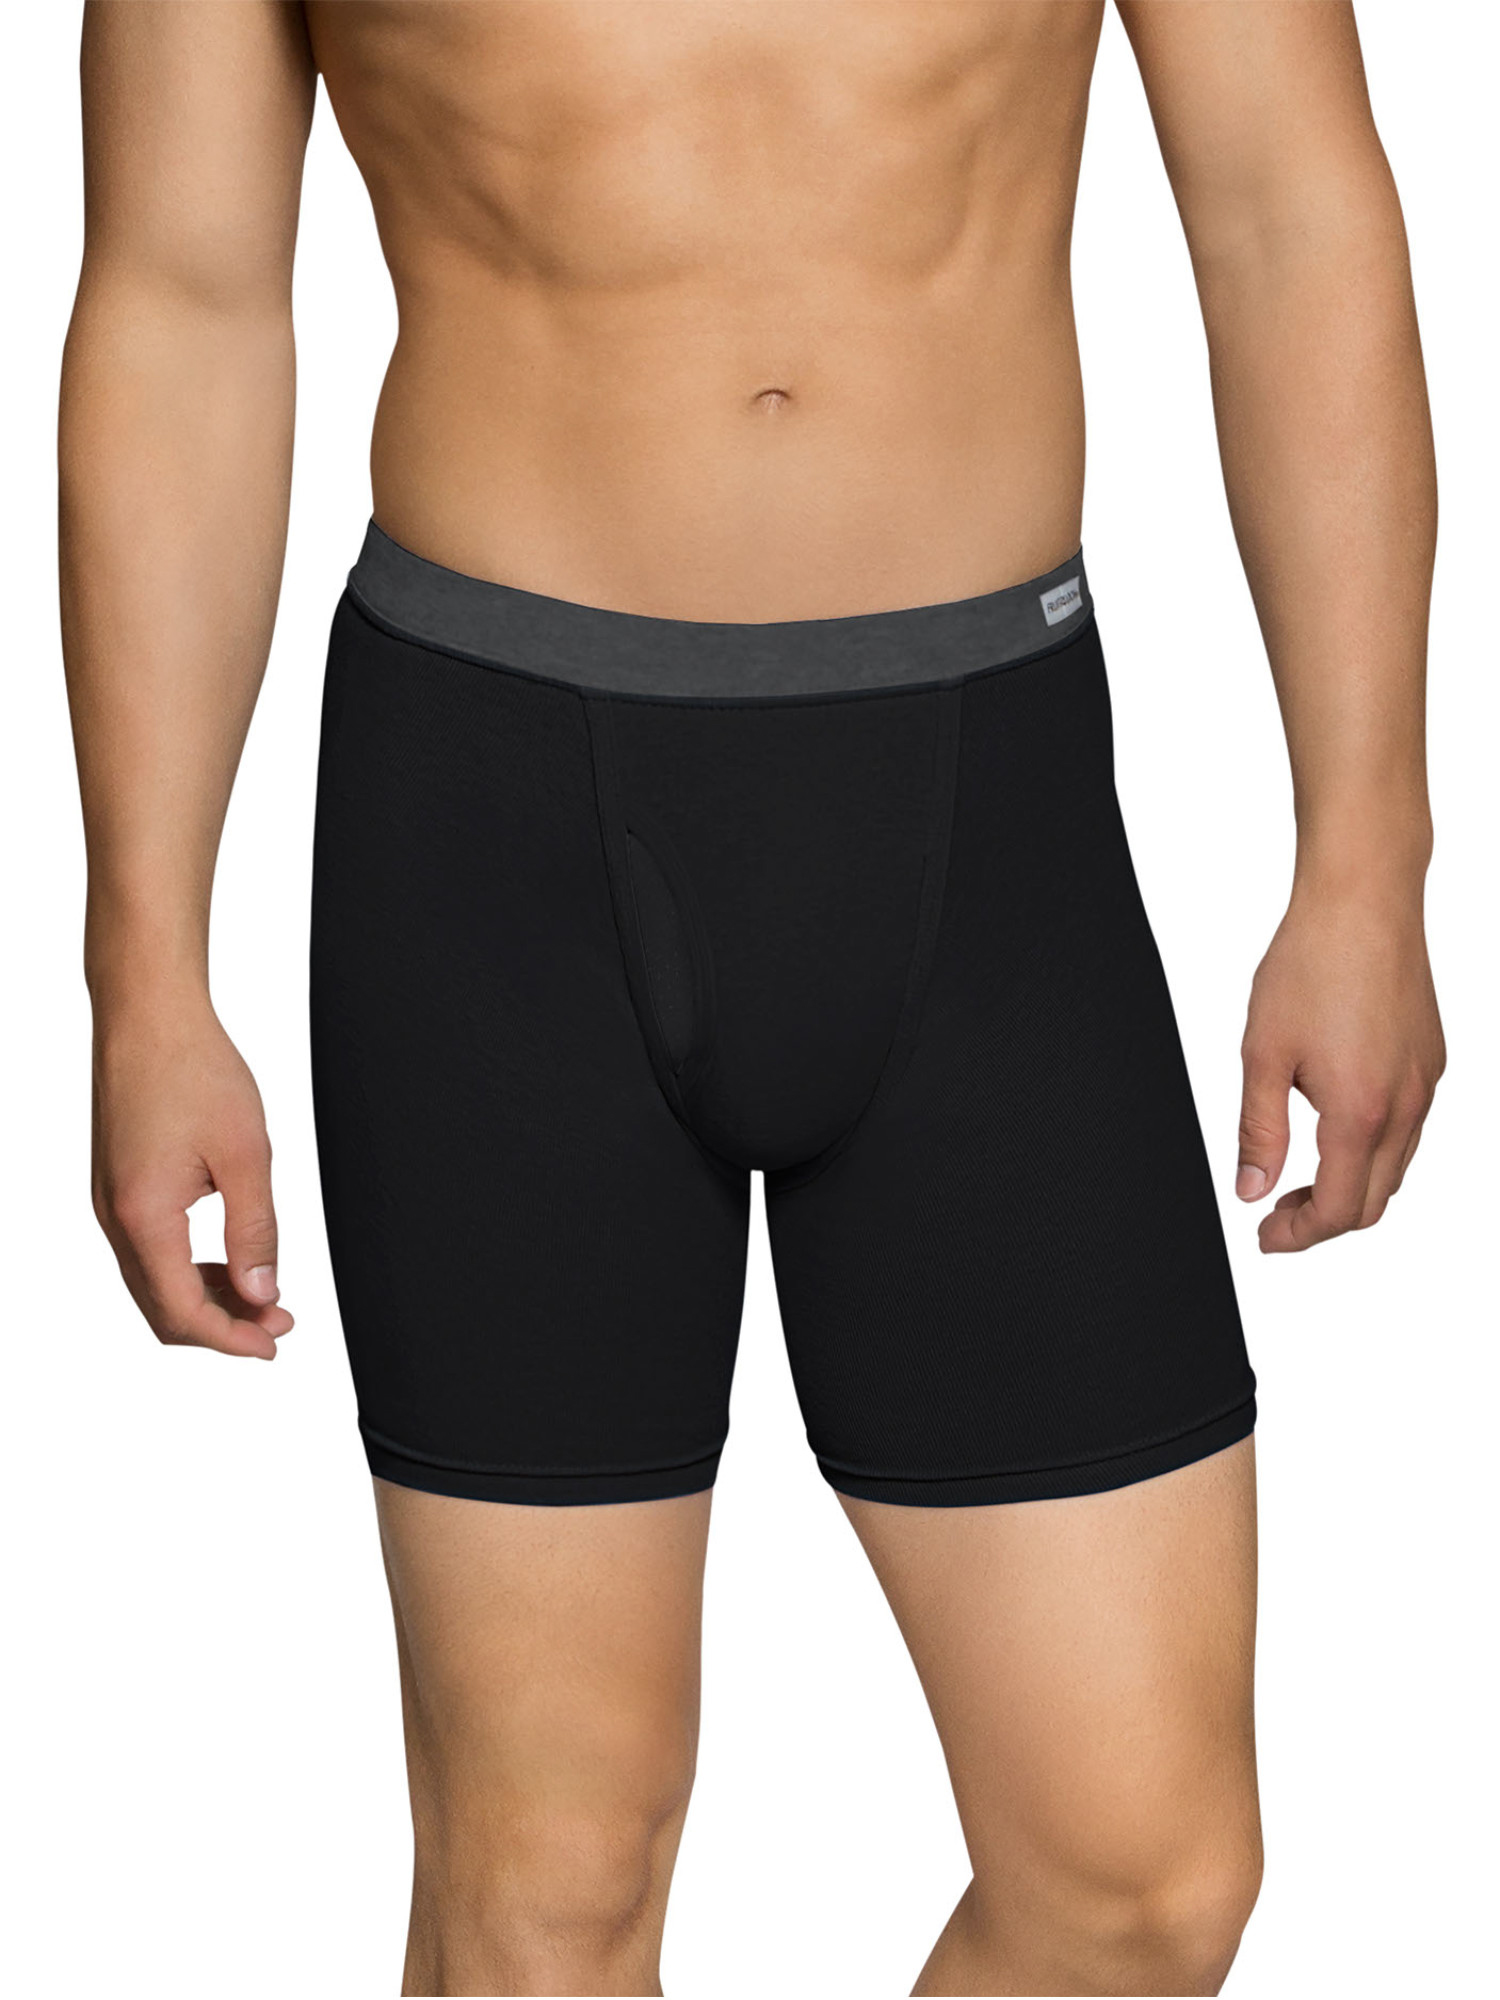 Big Men's CoolZone Fly Dual Defense Covered Waistband Boxer Briefs, Extended Sizes, 4 Pack